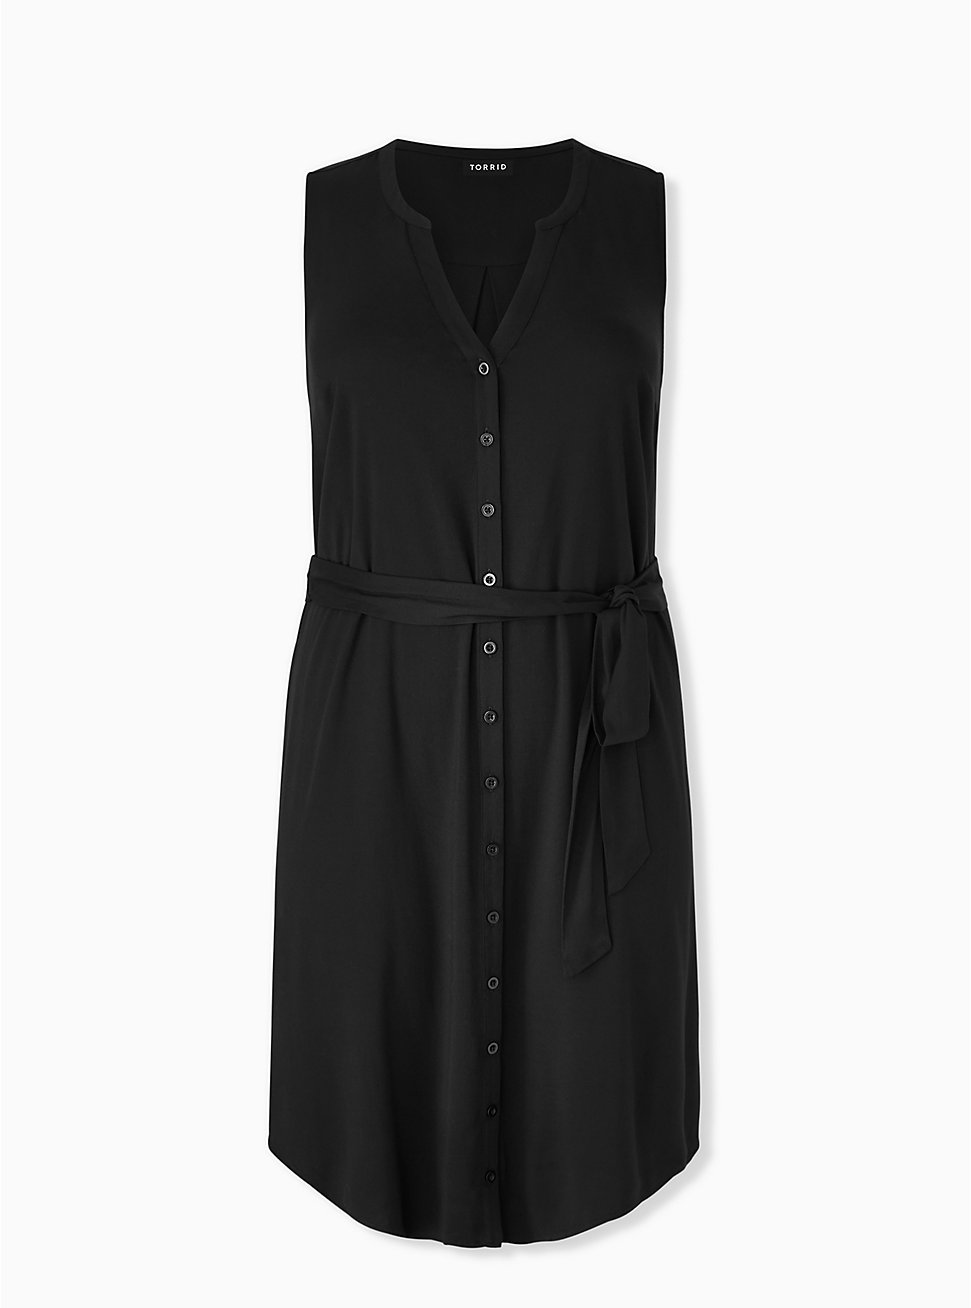 Plus Size Black Challis Button Front Self Tie Shirt Dress , DEEP BLACK, hi-res